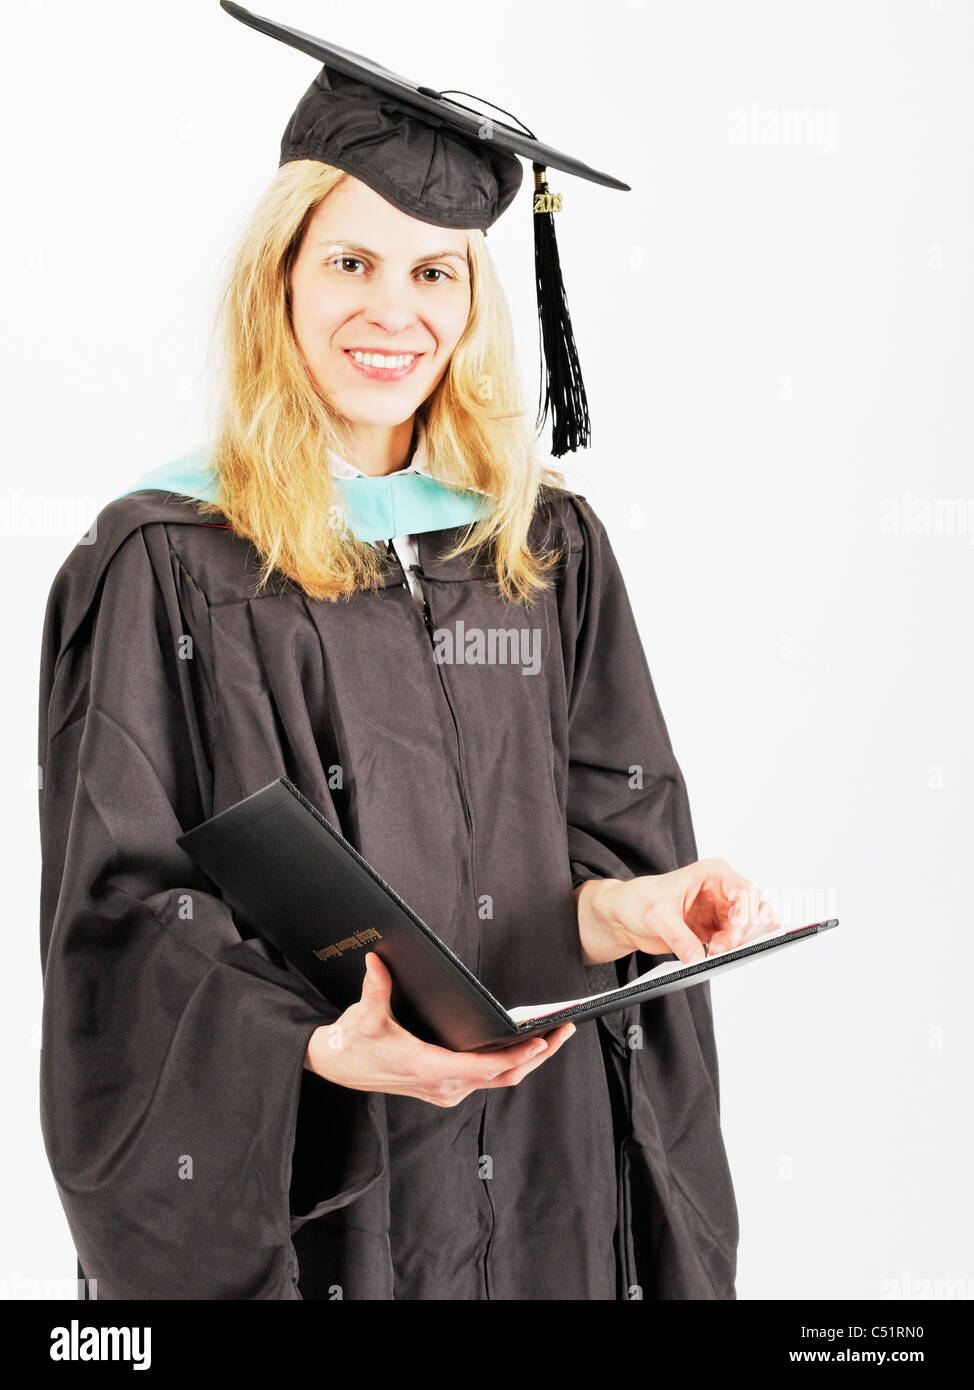 Close Up View of a Graduate in Ceremonial Dress Holding Certificate - Stock Image